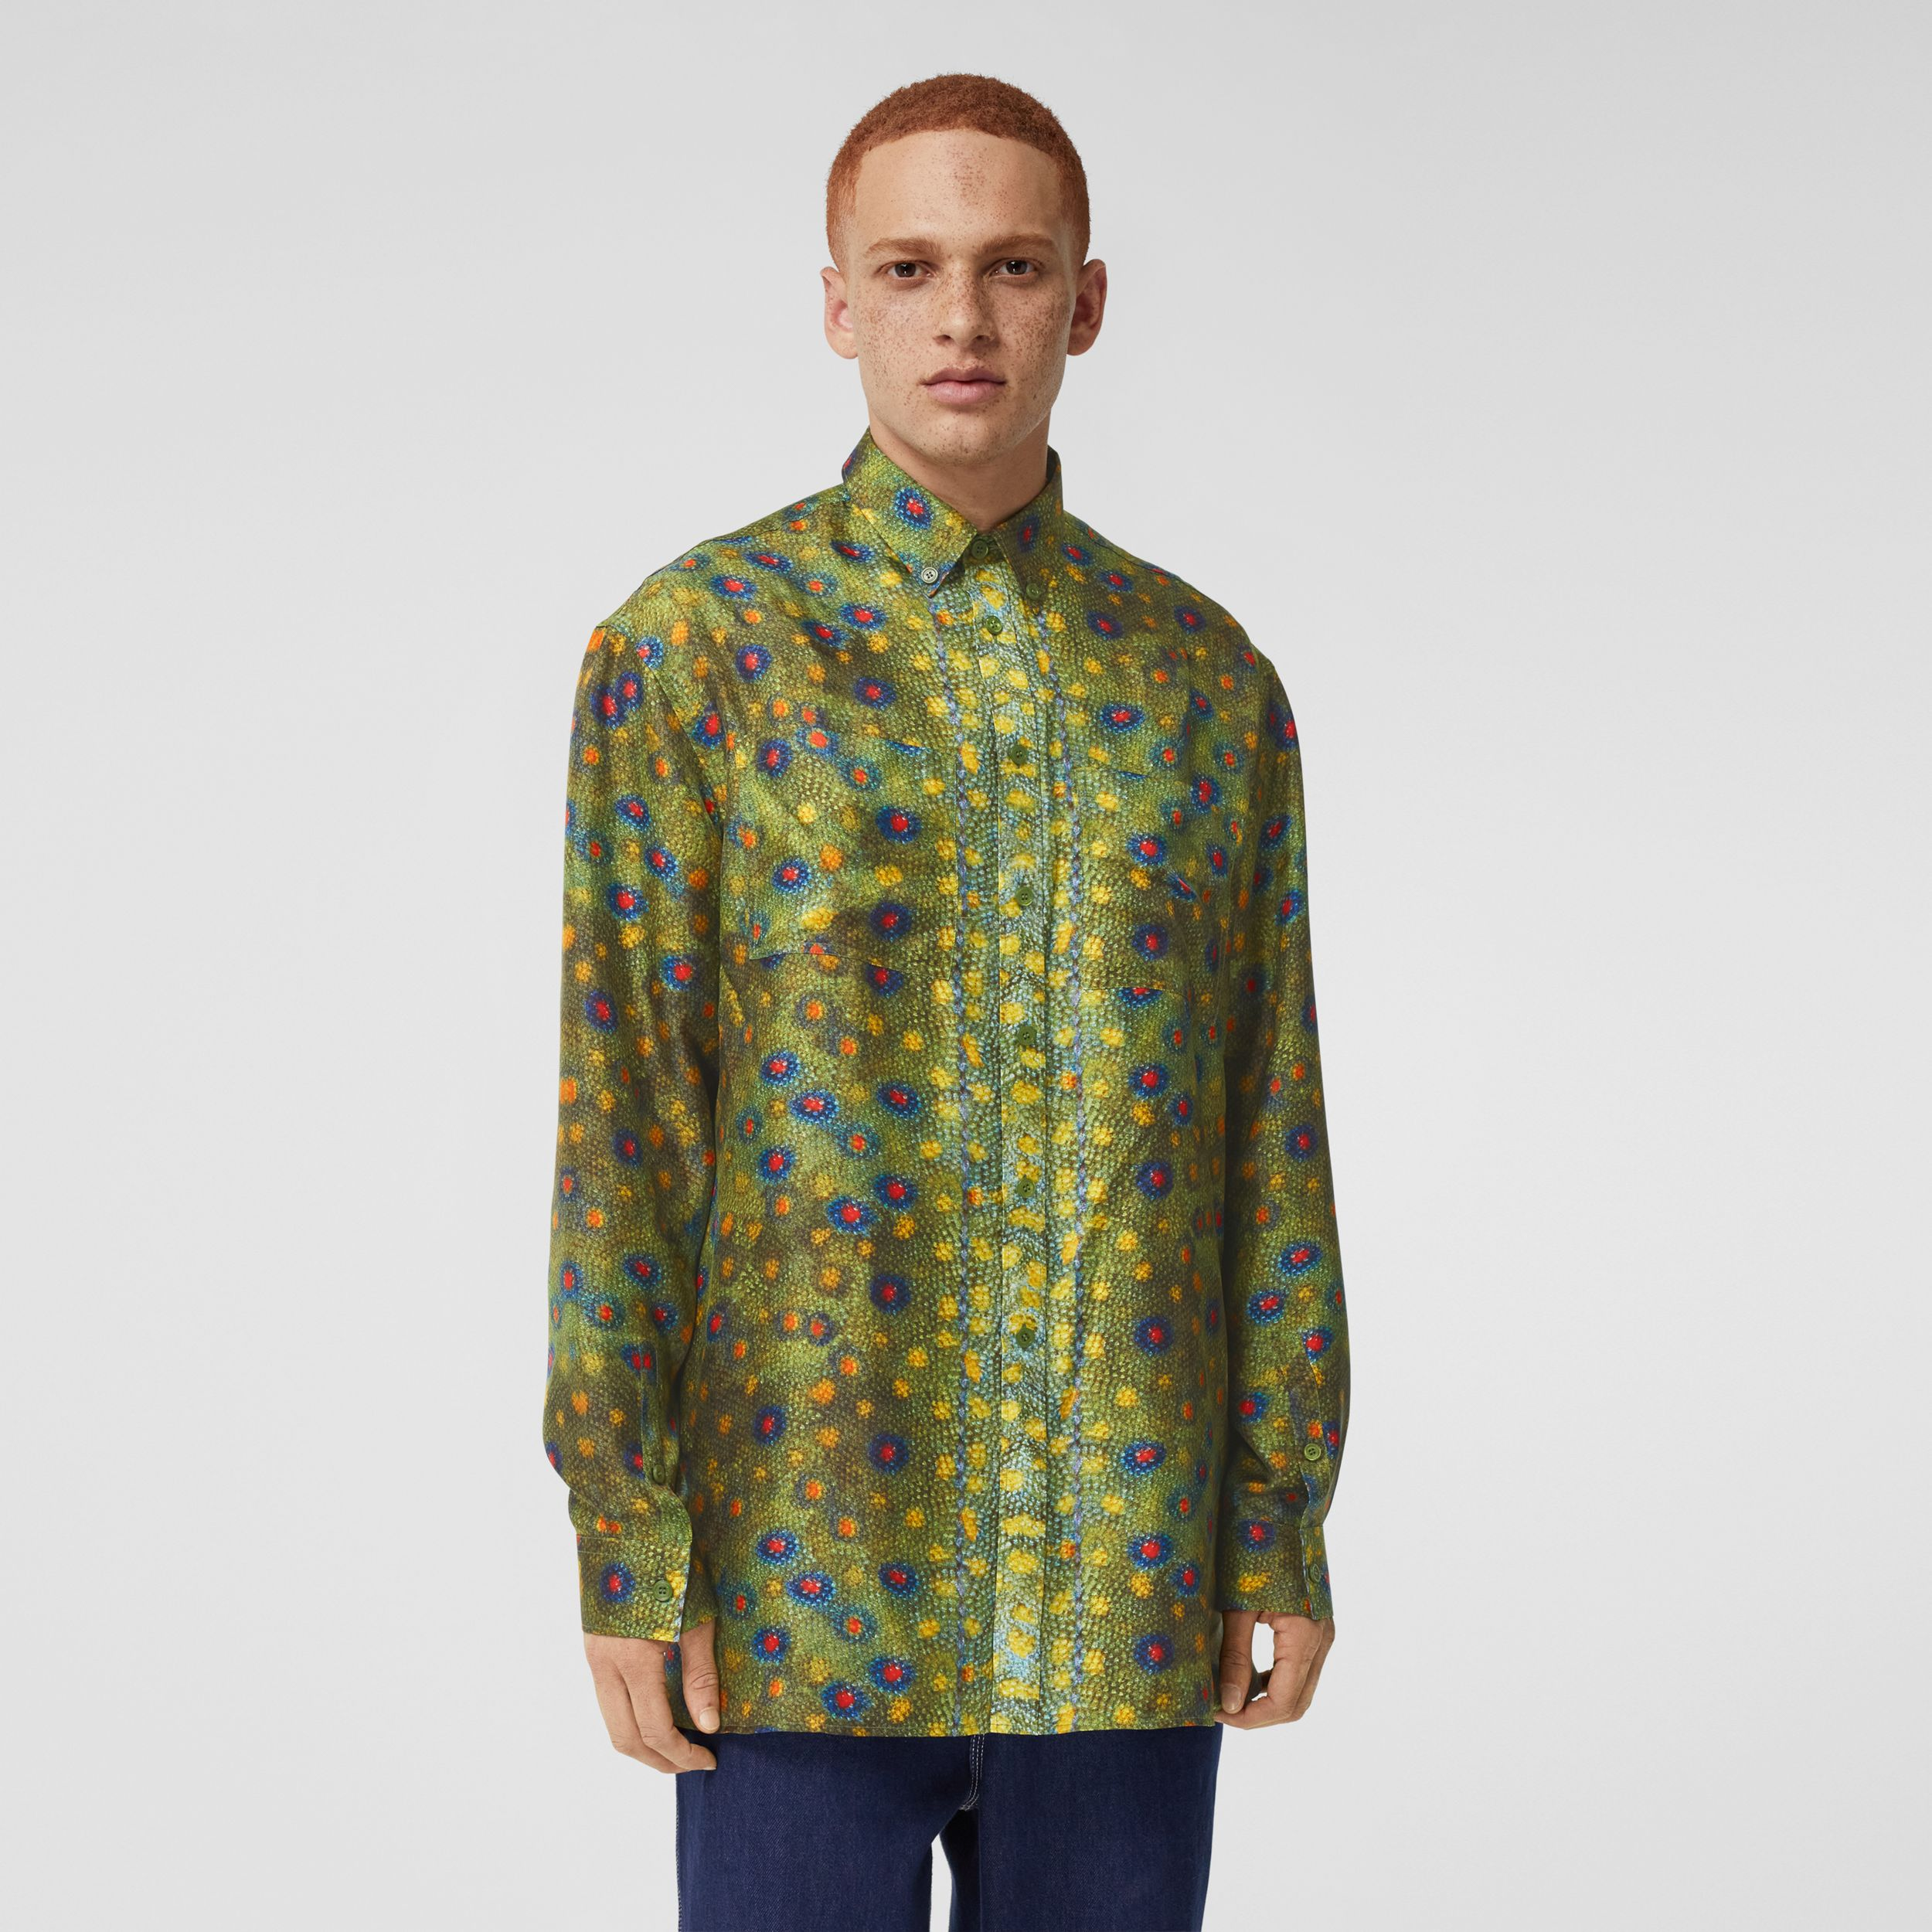 Fish-scale Print Silk Shirt in Olive - Men | Burberry United Kingdom - 1